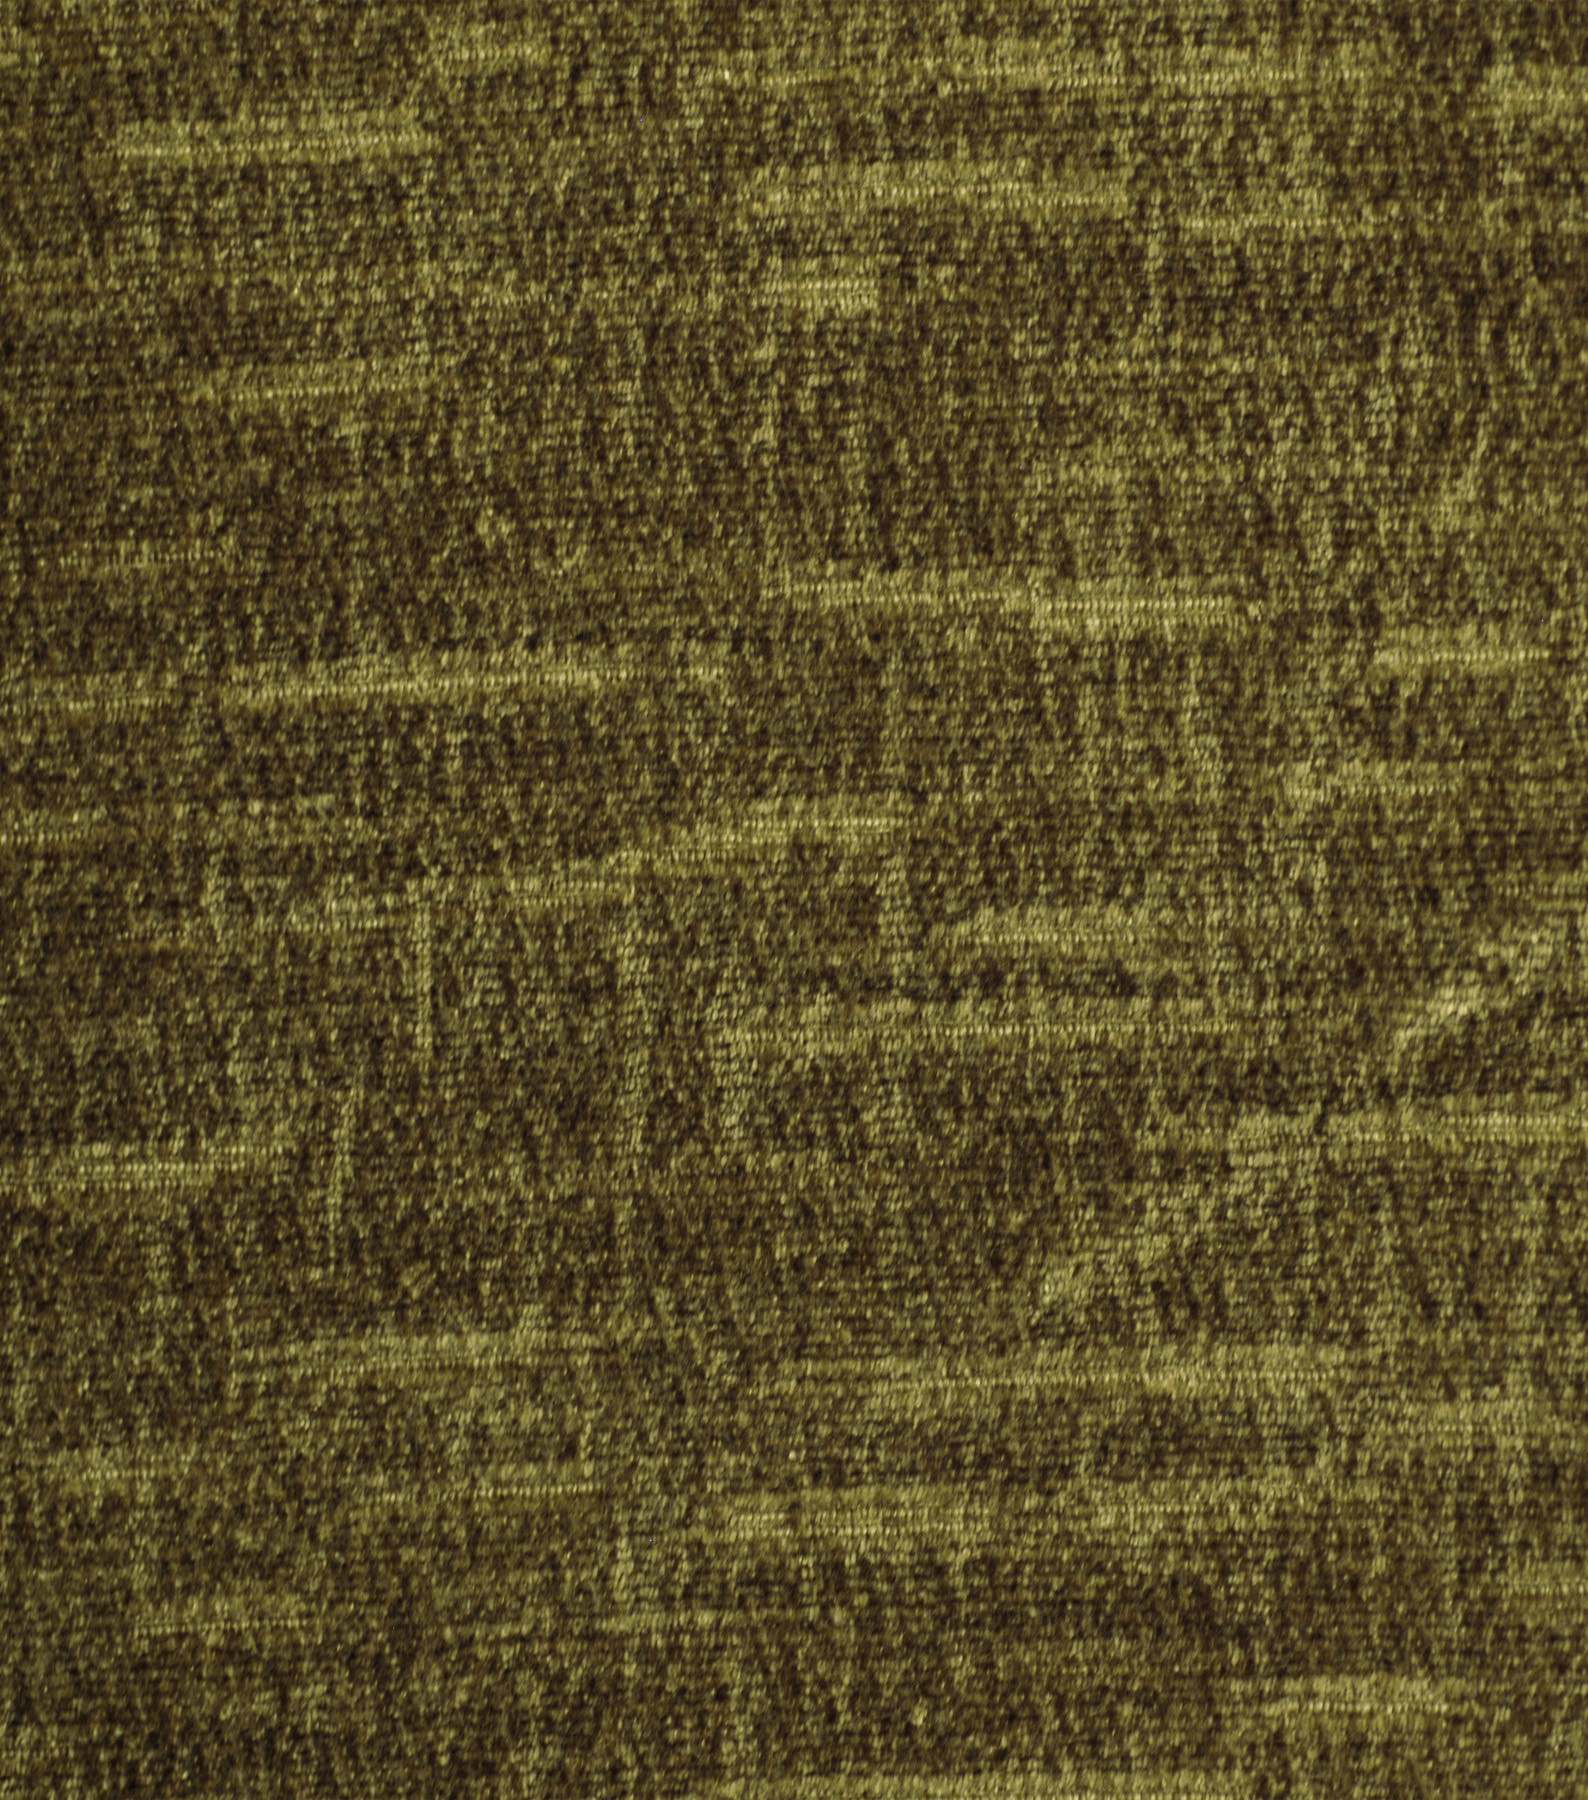 Home Decor 8\u0022x8\u0022 Fabric Swatch-Signature Series King Edward Moss